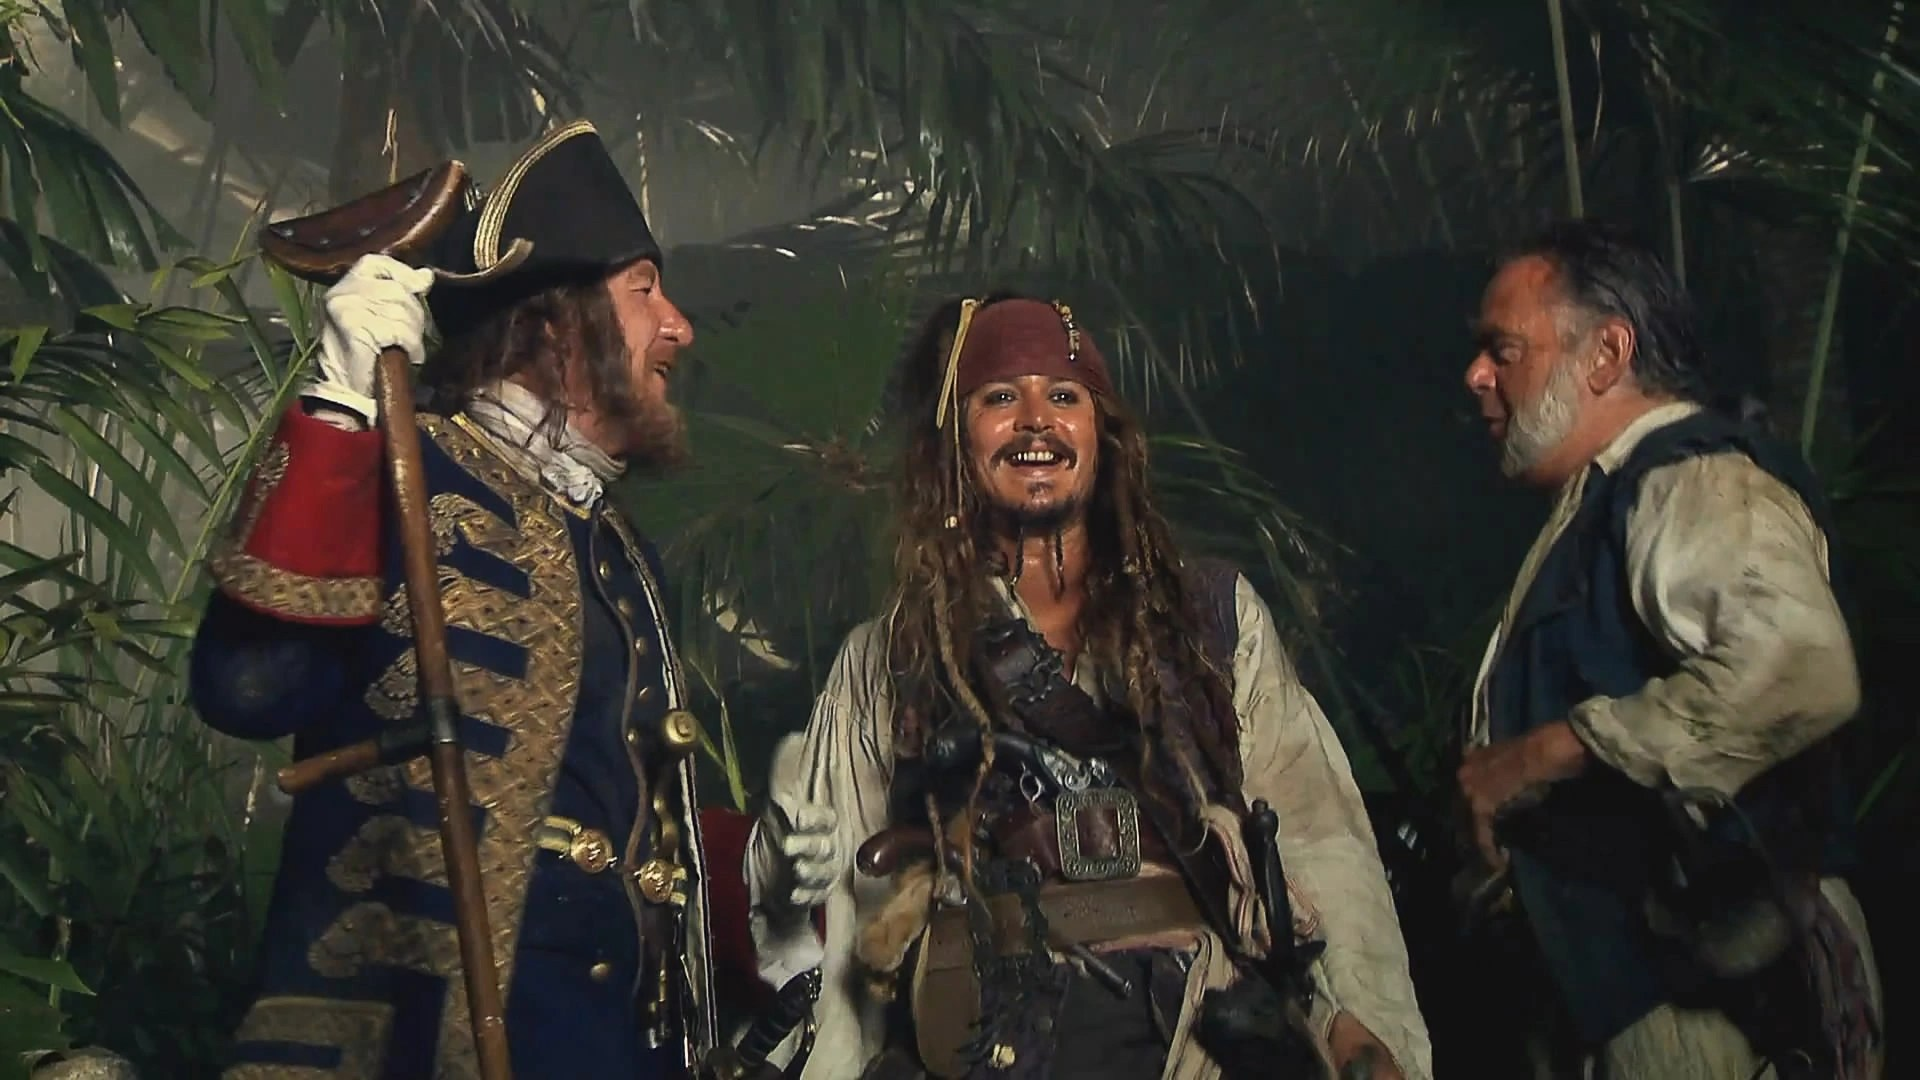 List of Pirates of the Caribbean cast members - Pirates of the